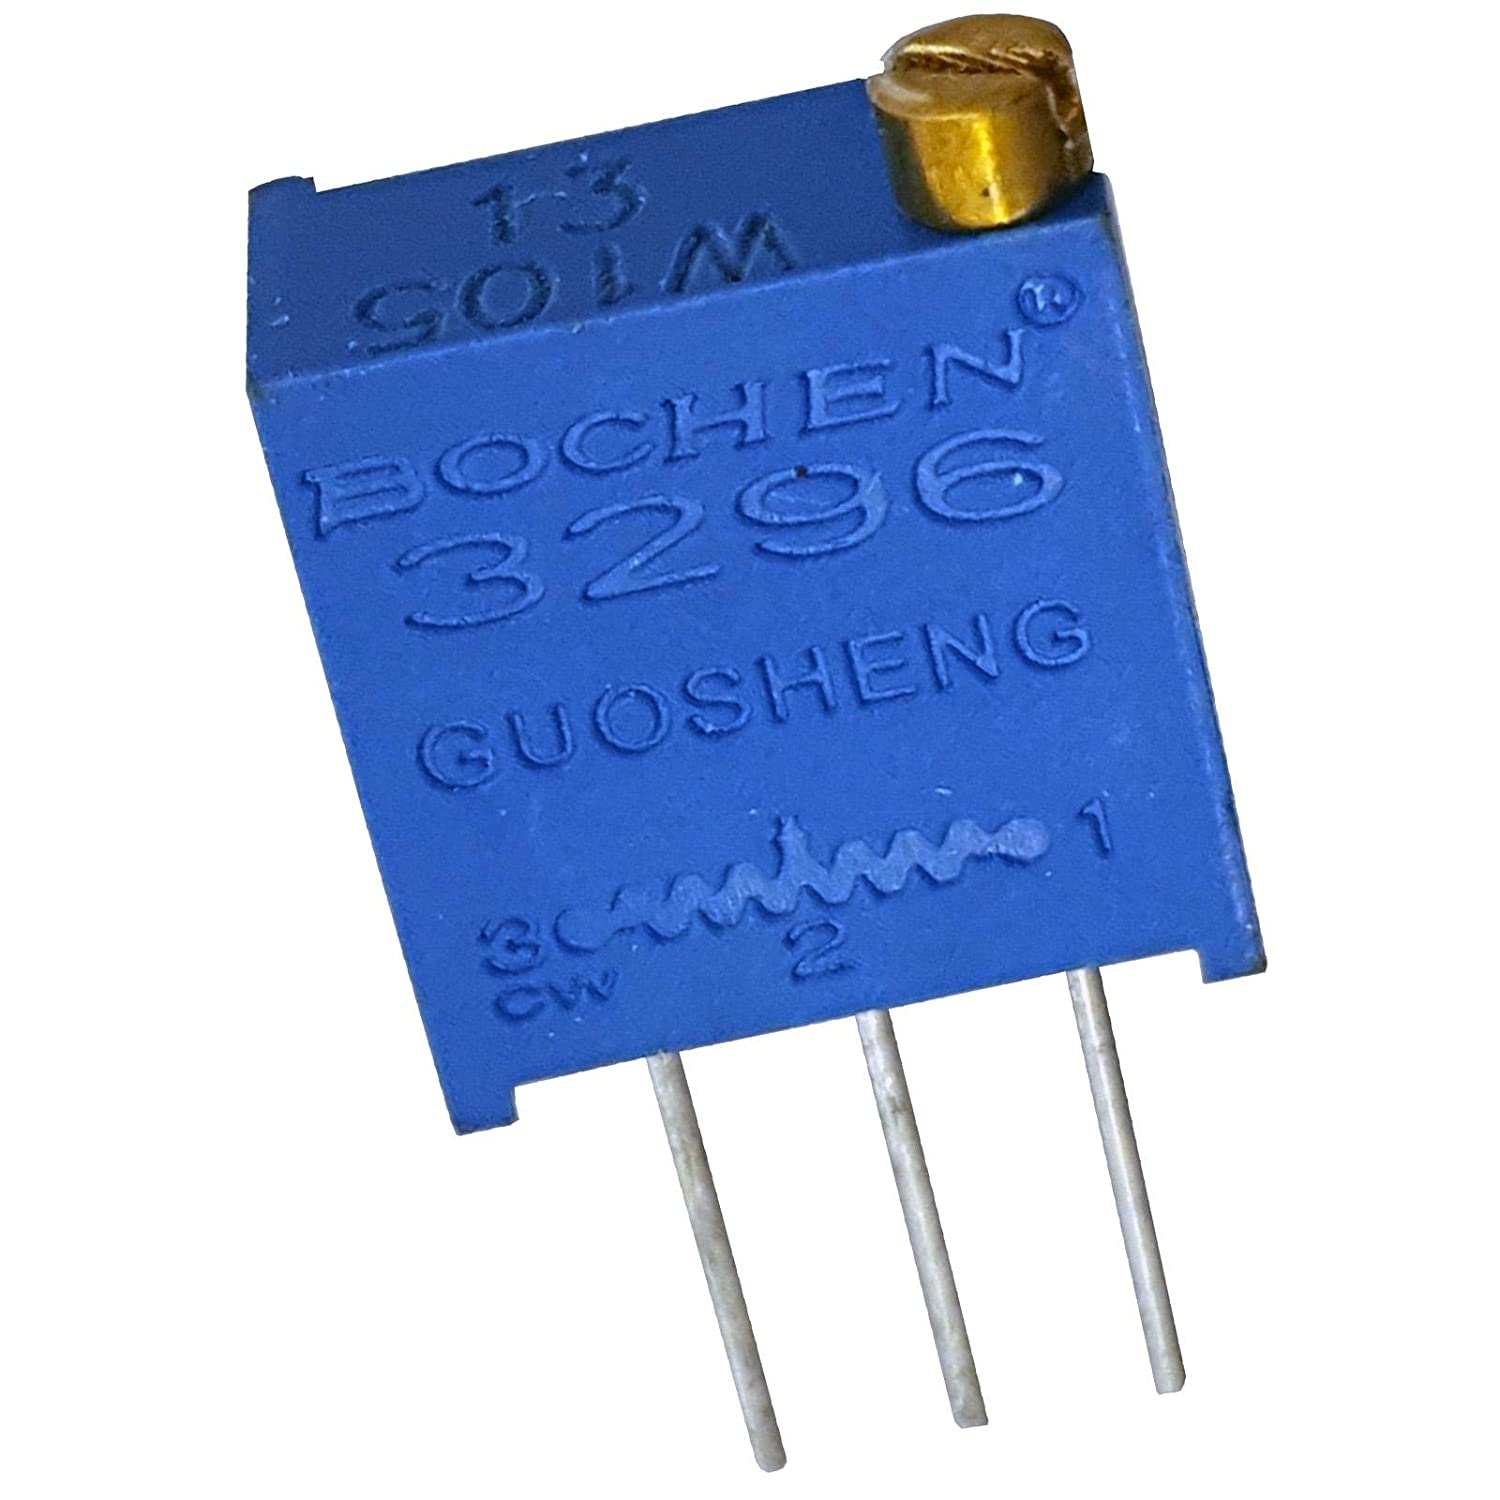 5 x 5K ohm 502 3296W Multiturn Variable Trimmer Preset Resistor Trimming Potentiometer Square Trimpot Bochen